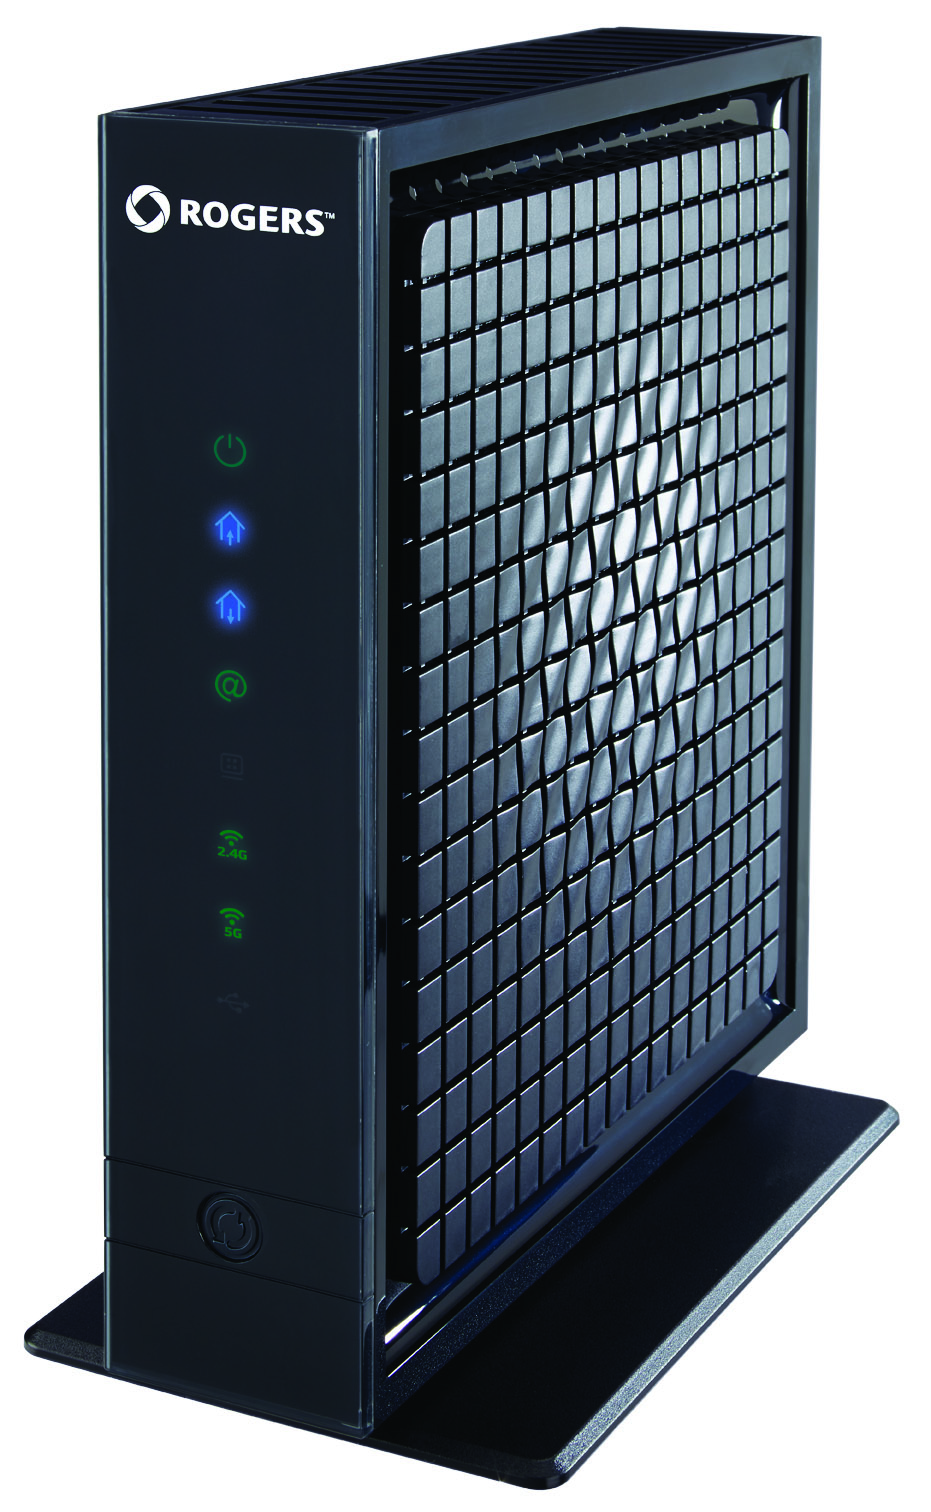 Rogers Adds New WiFi Modem & Several LTE Markets - Digital Home